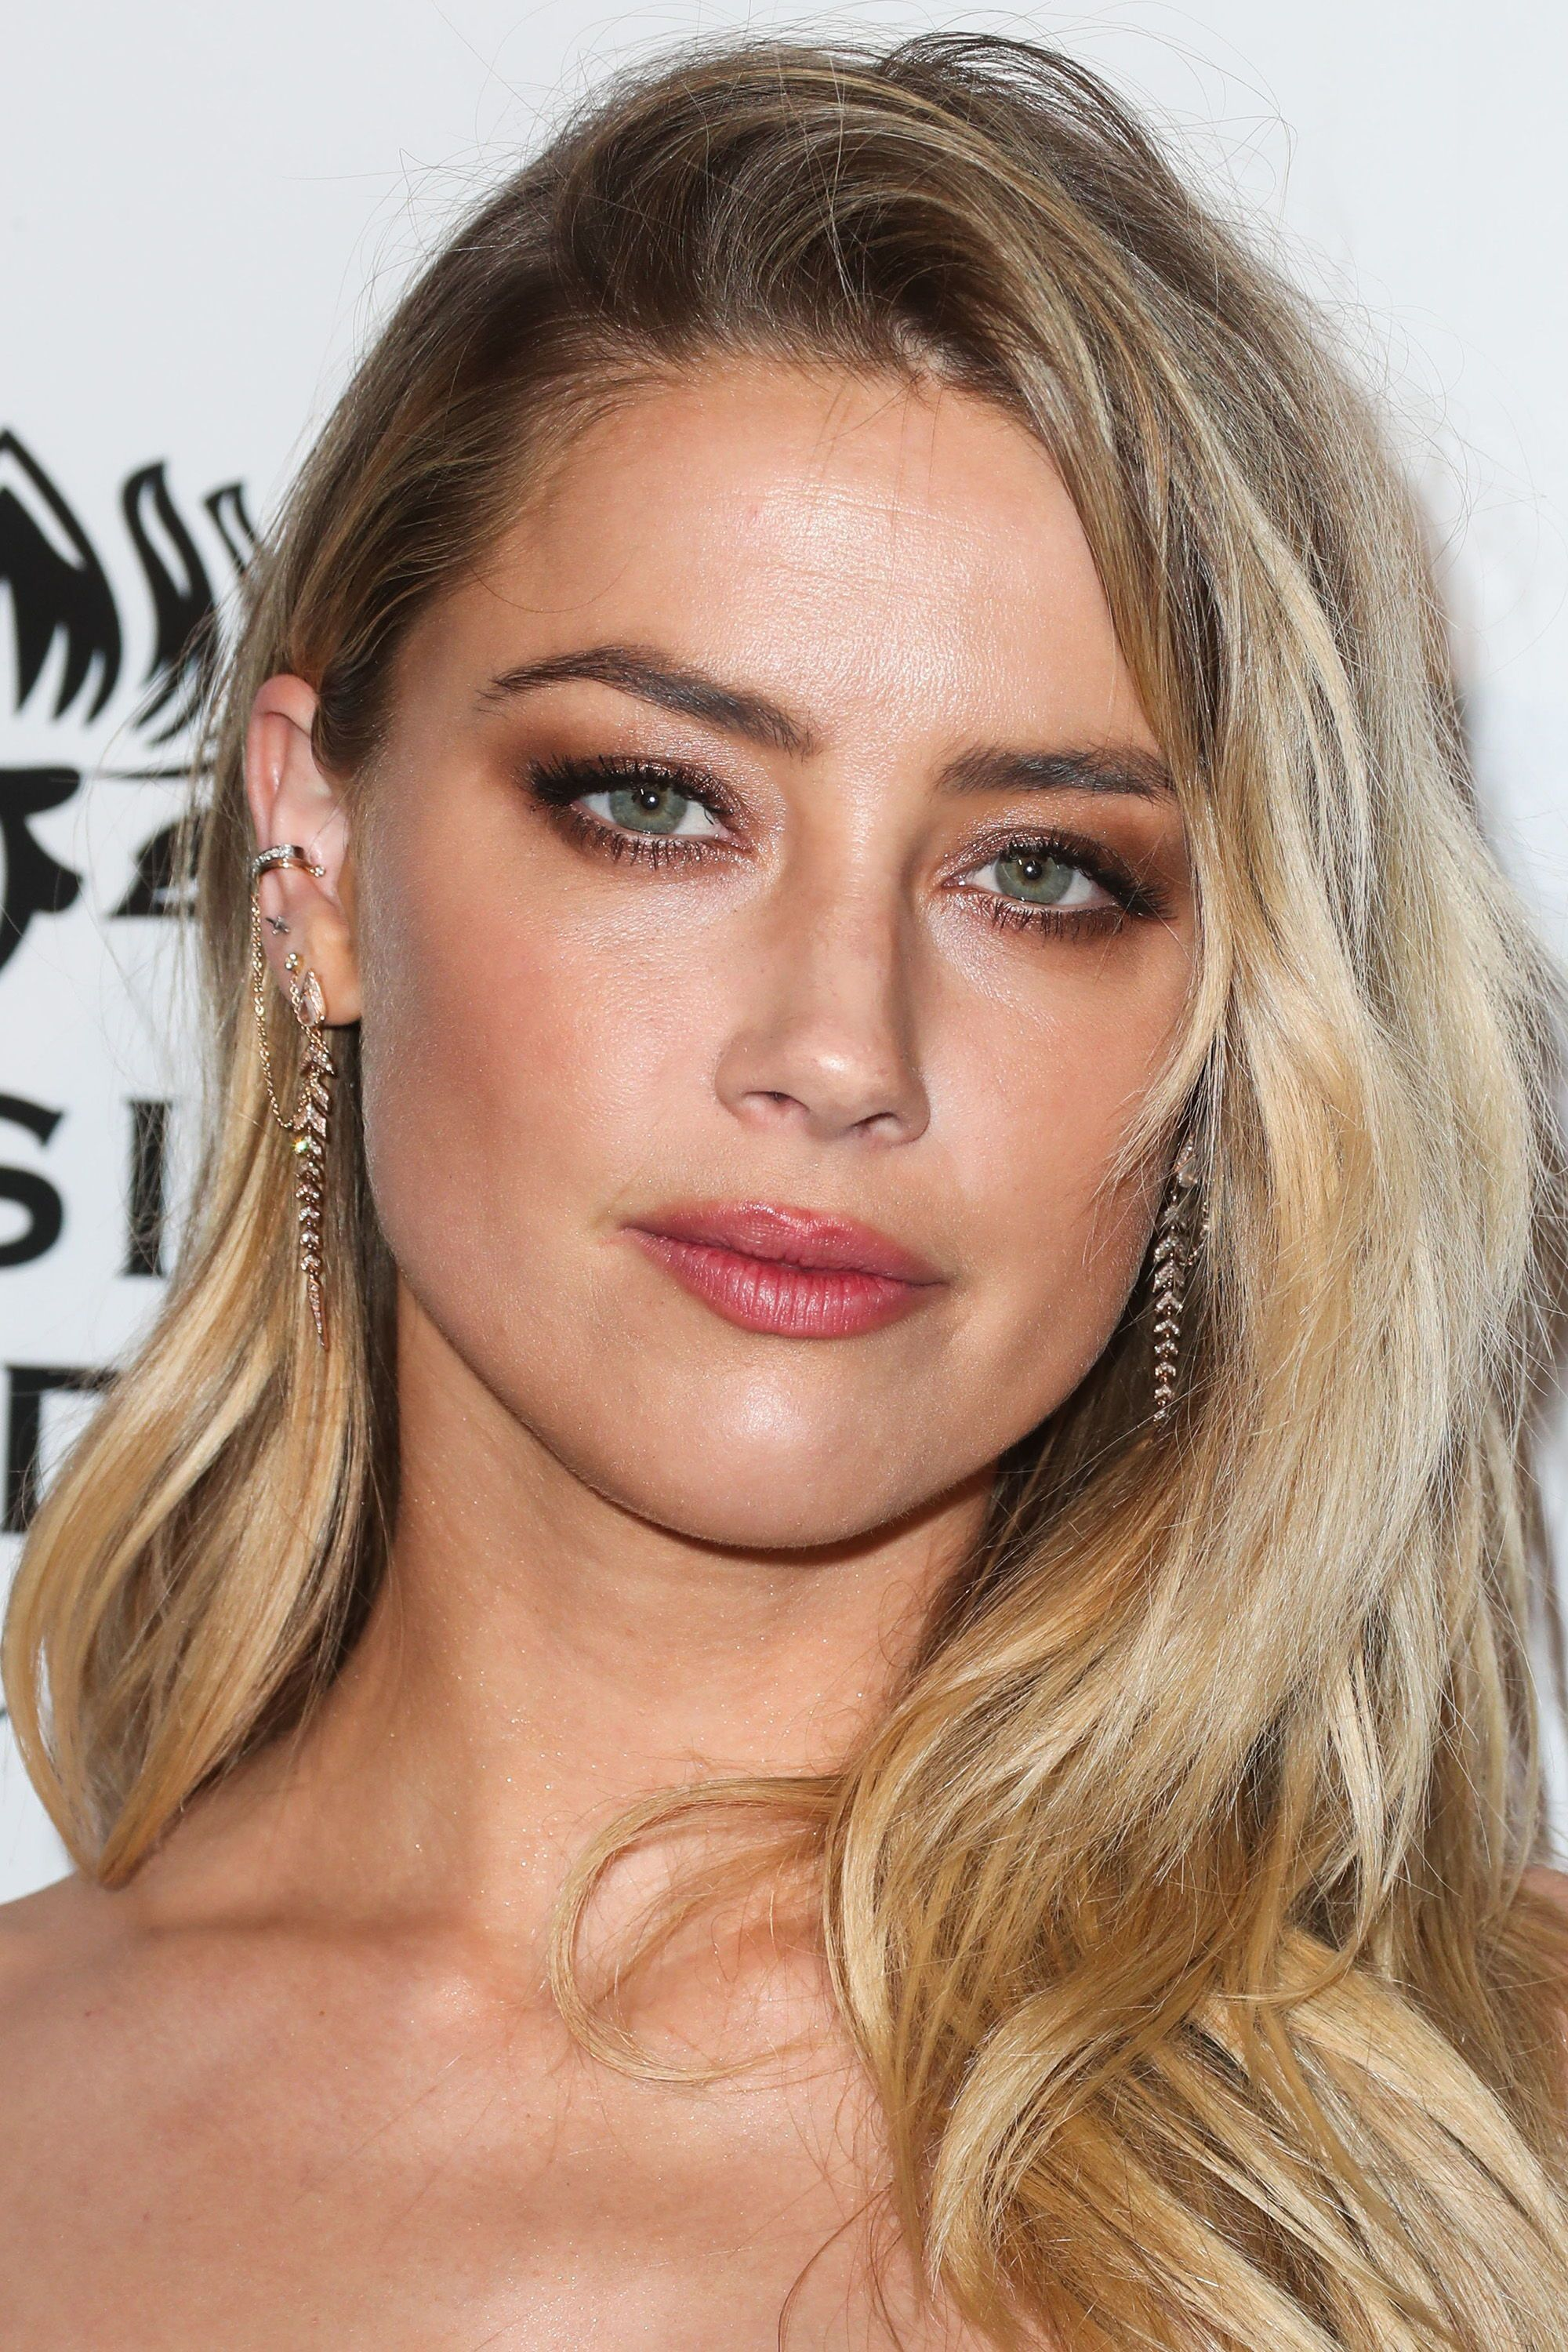 Amber Heard Before And After In 2020 Amber Heard Hair Amber Heard Makeup Amber Heard Style